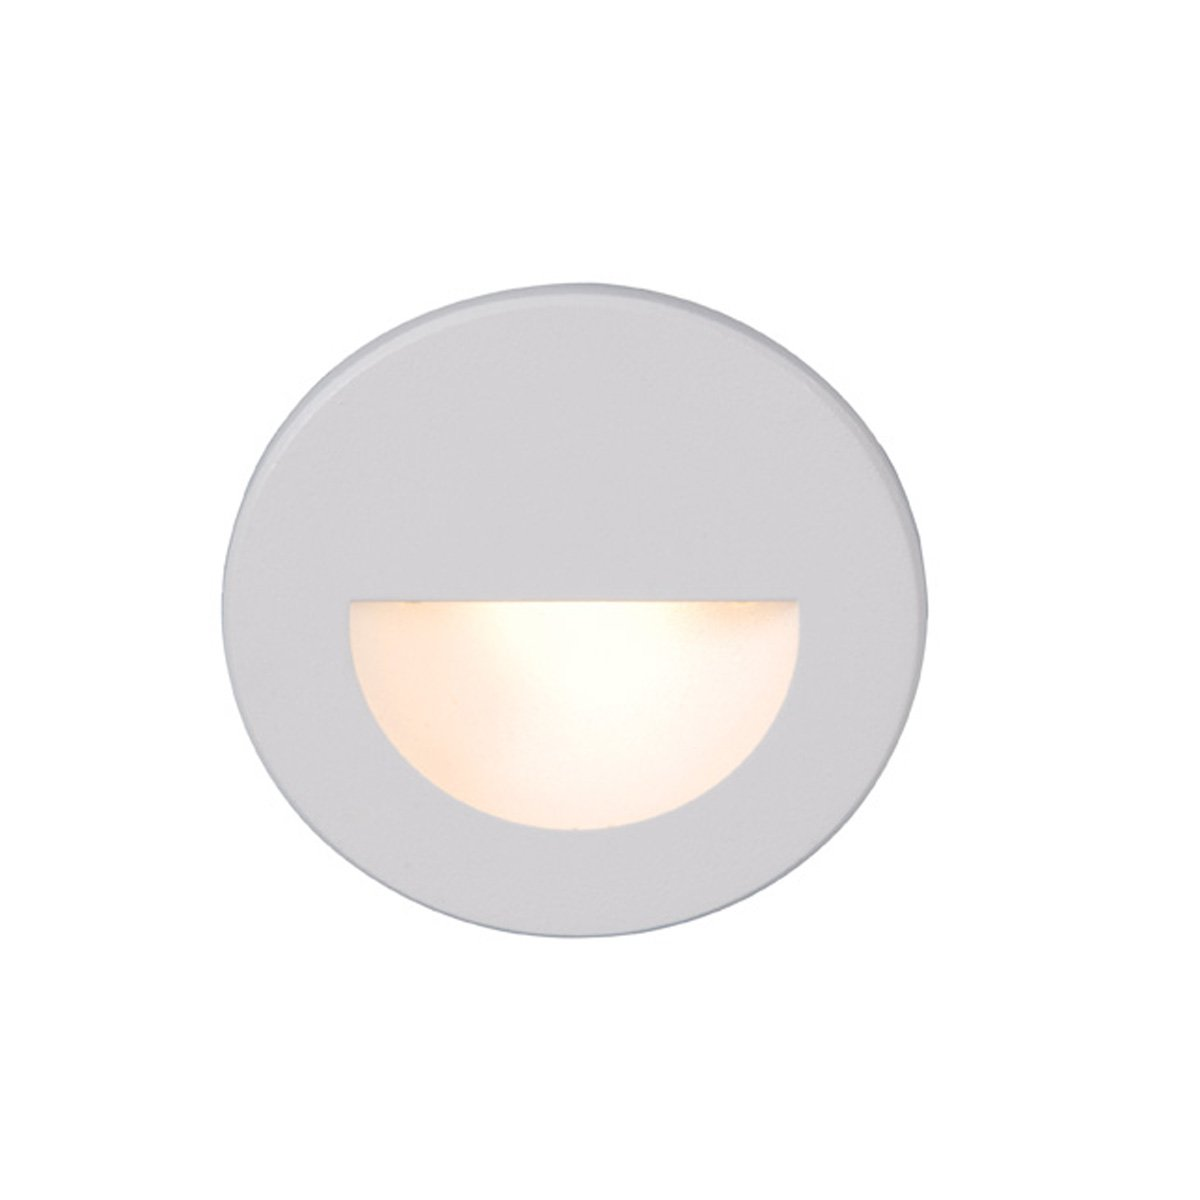 WAC Lighting WL-LED300-C-WT LED Step Light Circular Scoop by WAC Lighting